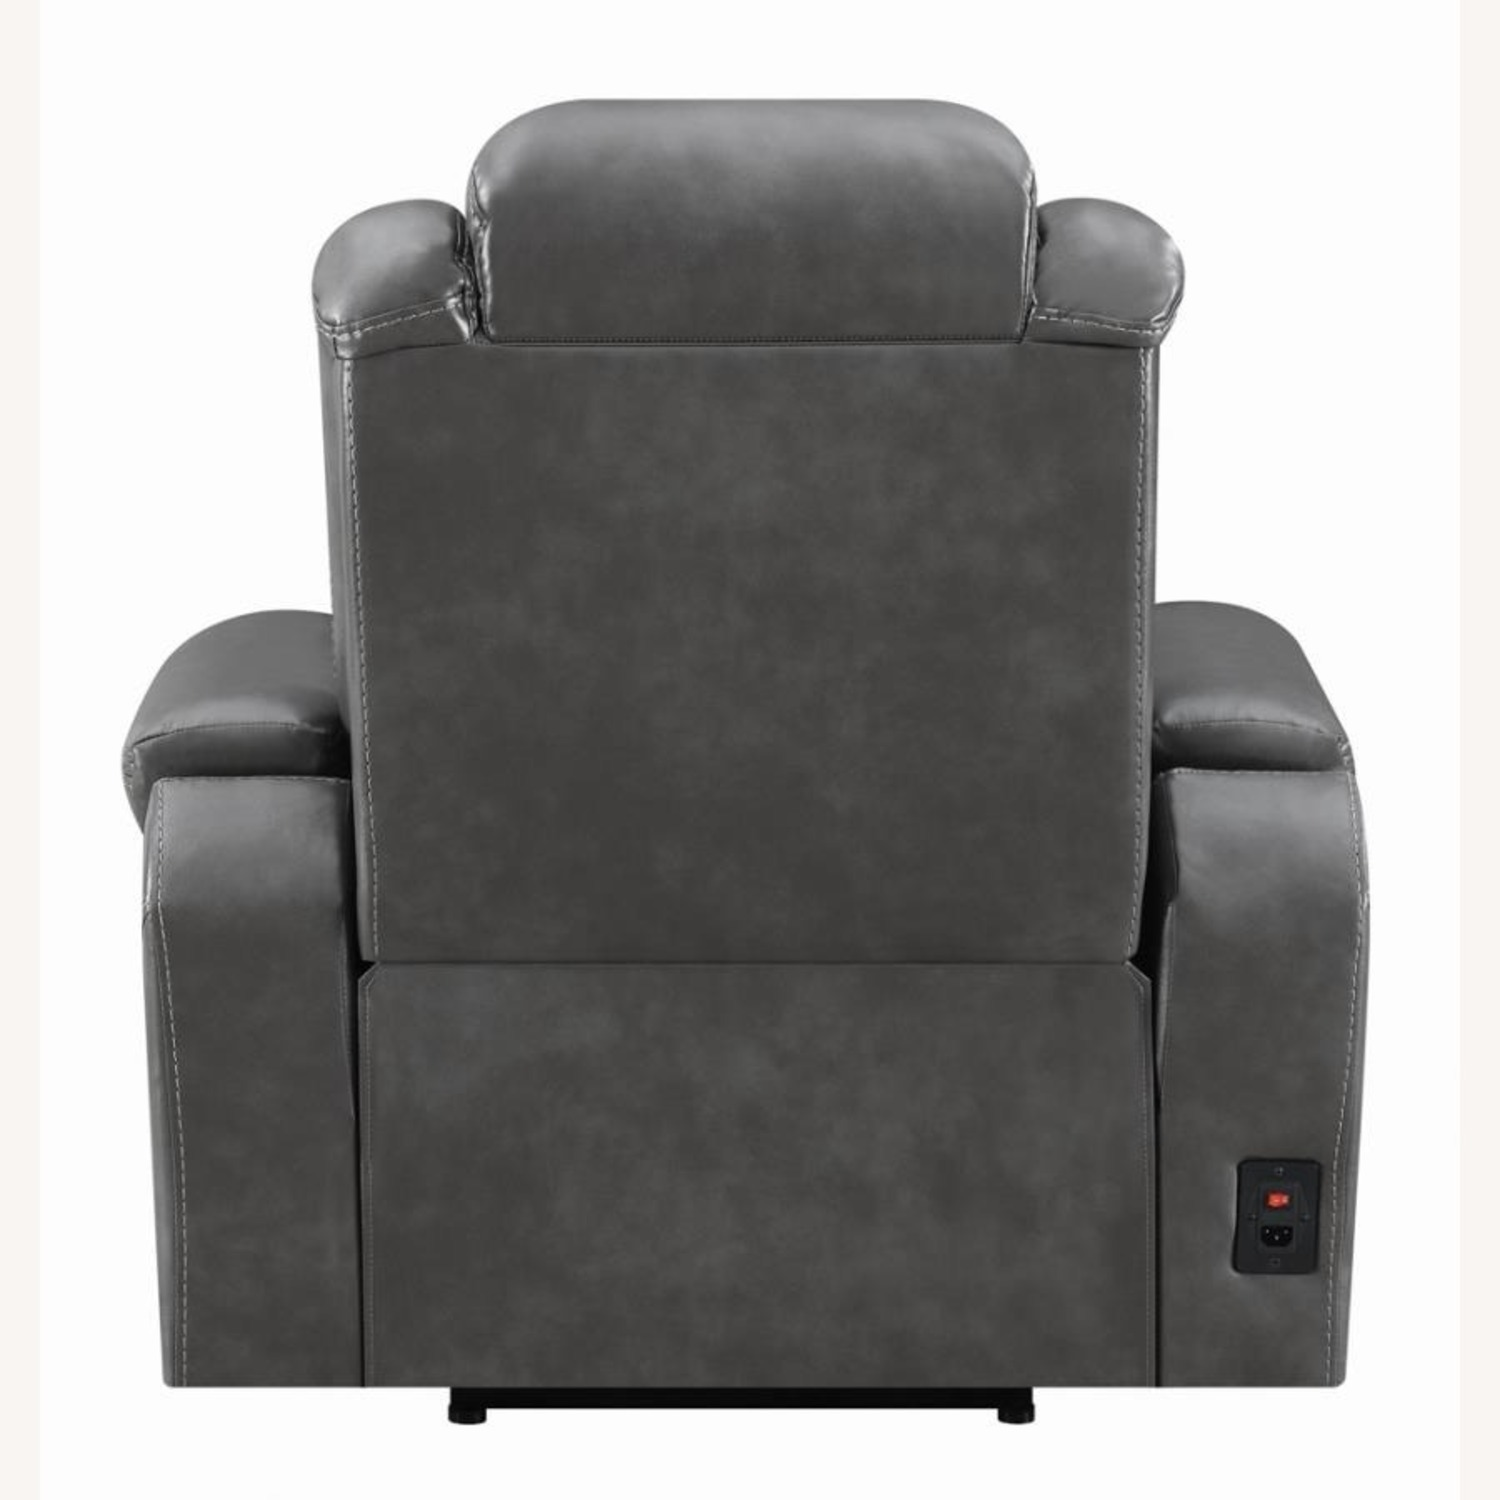 Power Recliner In Charcoal Microfiber Upholstery - image-3